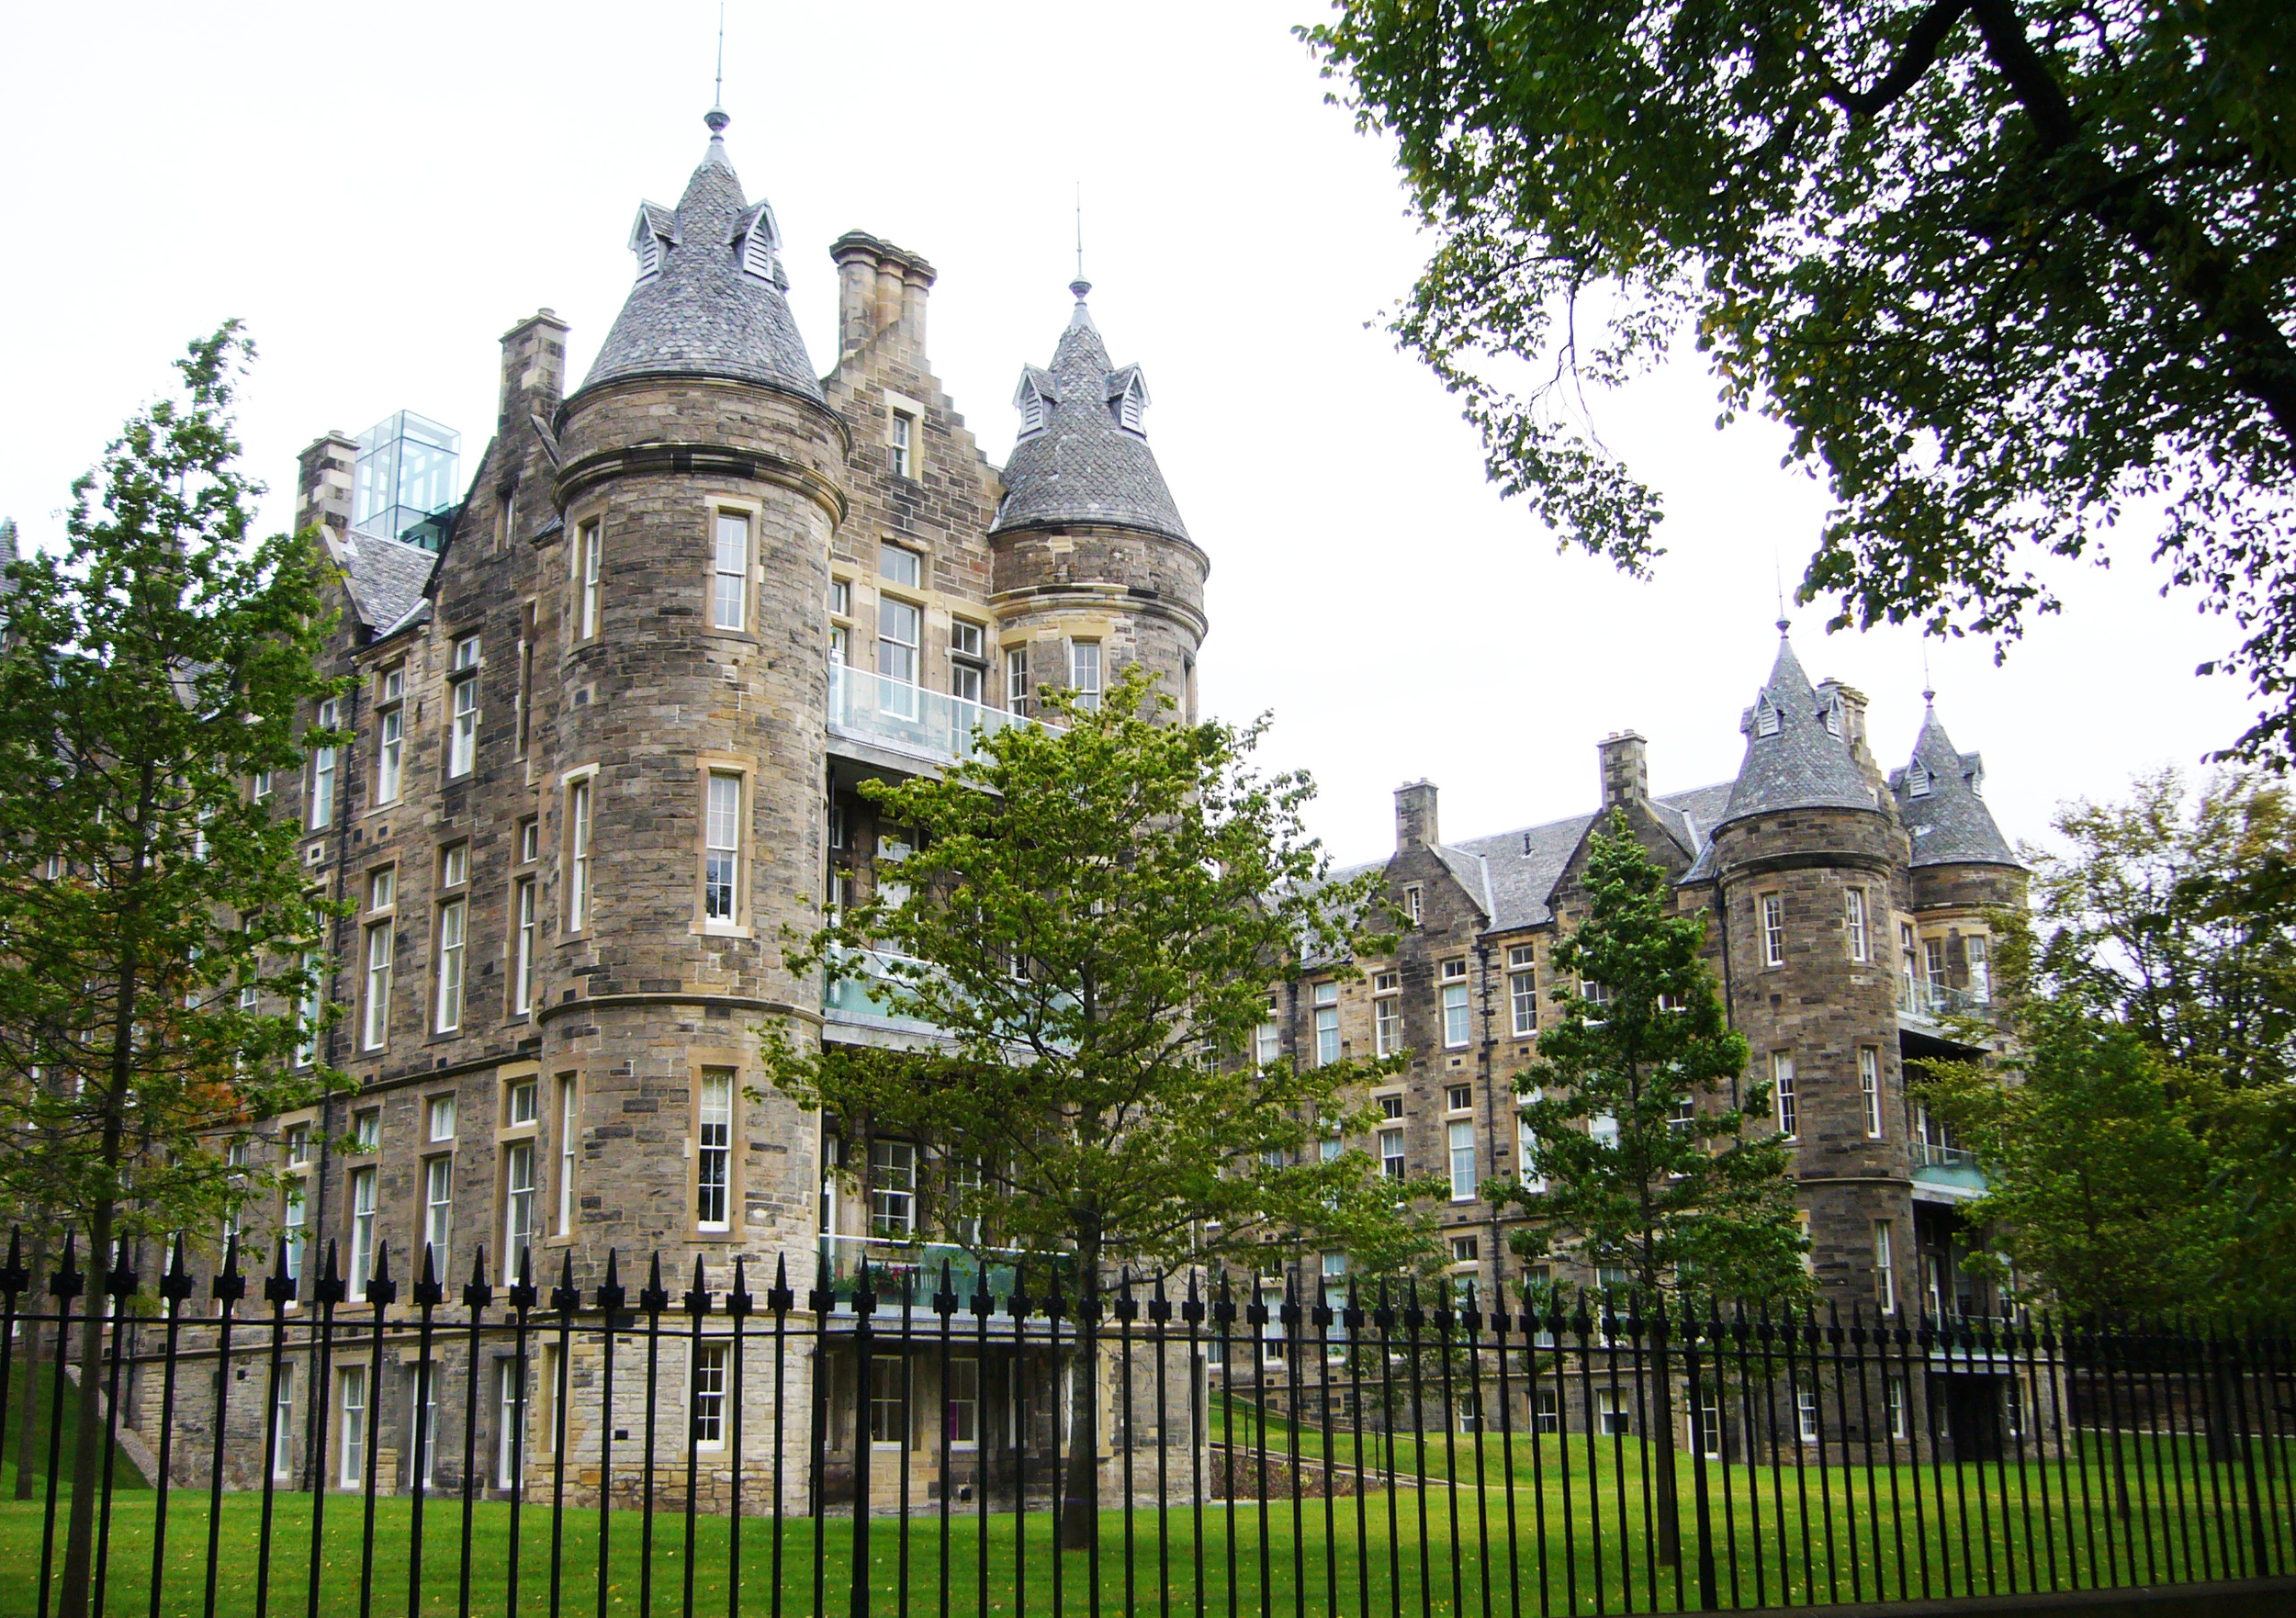 The old Royal Infirmary of Edinburgh, now being turned into residential accommodation